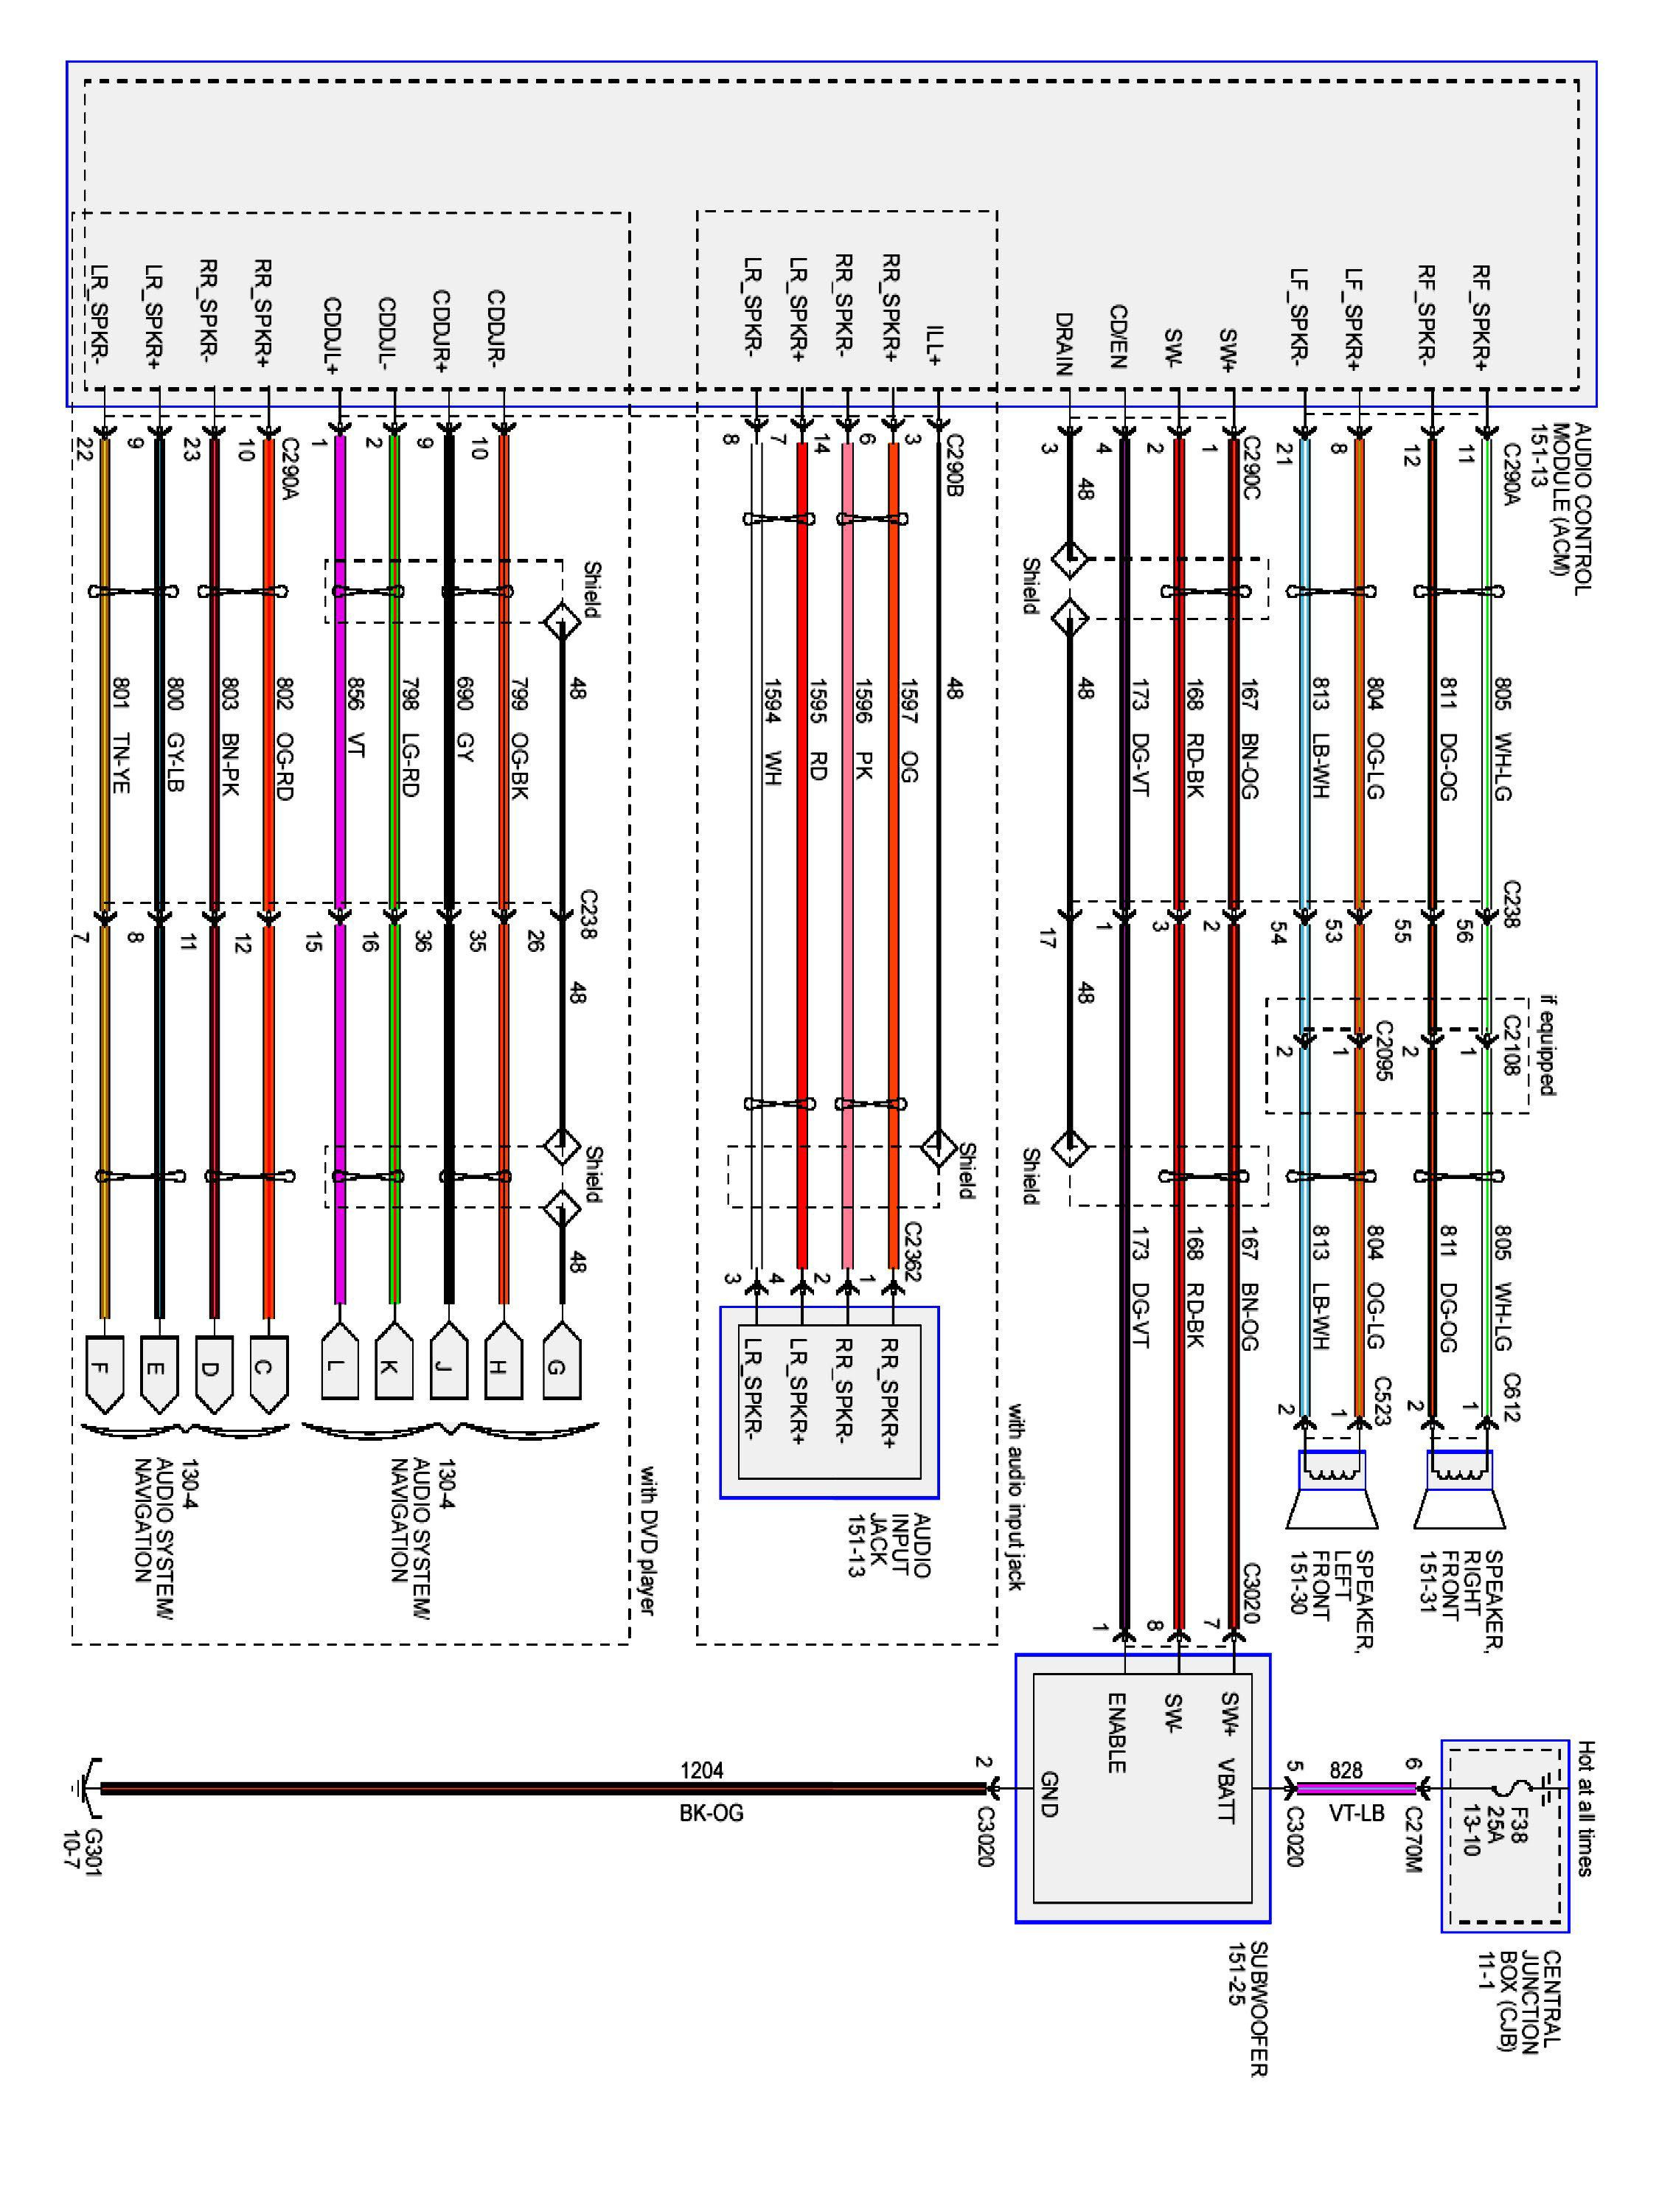 [SCHEMATICS_4HG]  DIAGRAM] Car Radio Wiring Harness Diagram 98 Expedition FULL Version HD  Quality 98 Expedition - 191458.ACCNET.FR | Wiring Diagram For 98 Expedition |  | Process Flow Diagram Haccp - accnet.fr